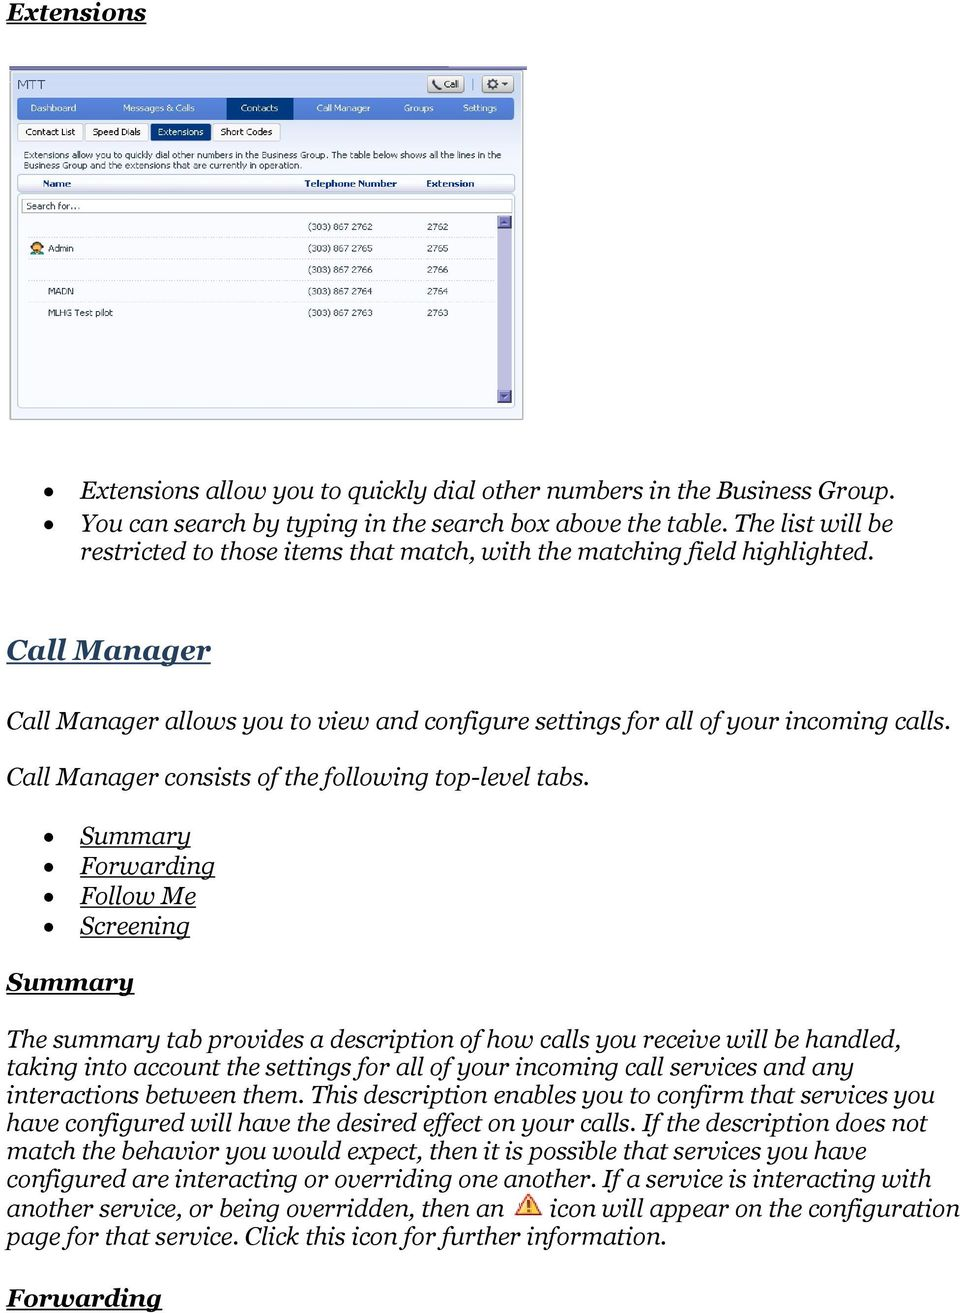 Call Manager consists of the following top-level tabs.